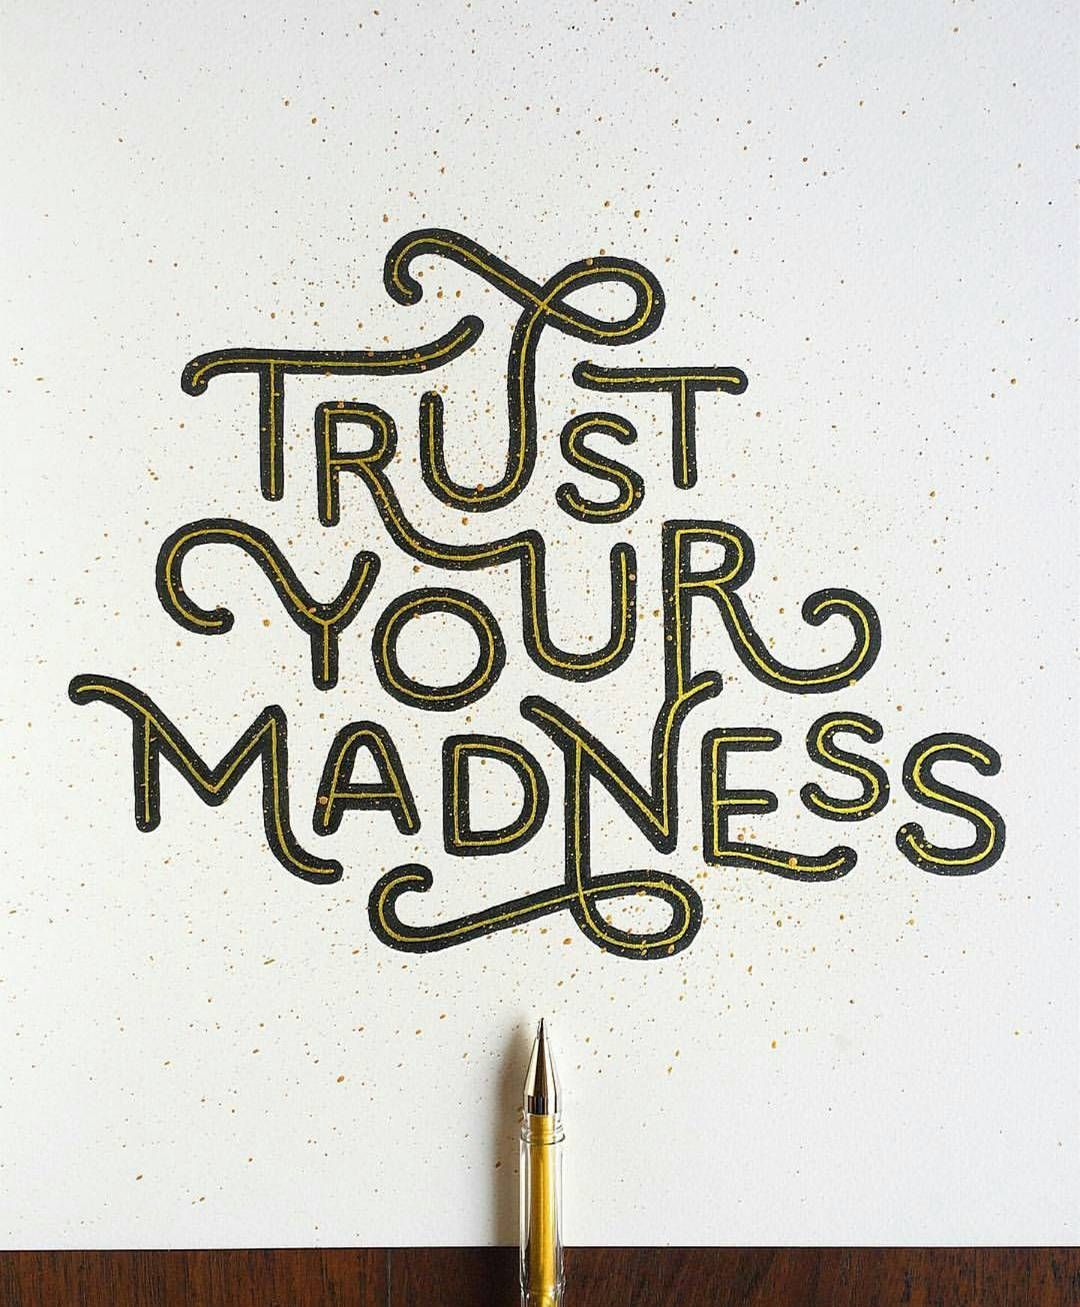 Trust Your Madness -From@see_mahimkar . . #pixelsurplus #typography #work #type #dailytype #thedailytype #typelove #typedesign #ambition #typeeverything #today #inspiration #fonts #font #inspirational #designer #design #trust #quote #quotes #quoteoftheday #typespire #typegang #goodtype #illustration #illustrator #designers #graphicdesign